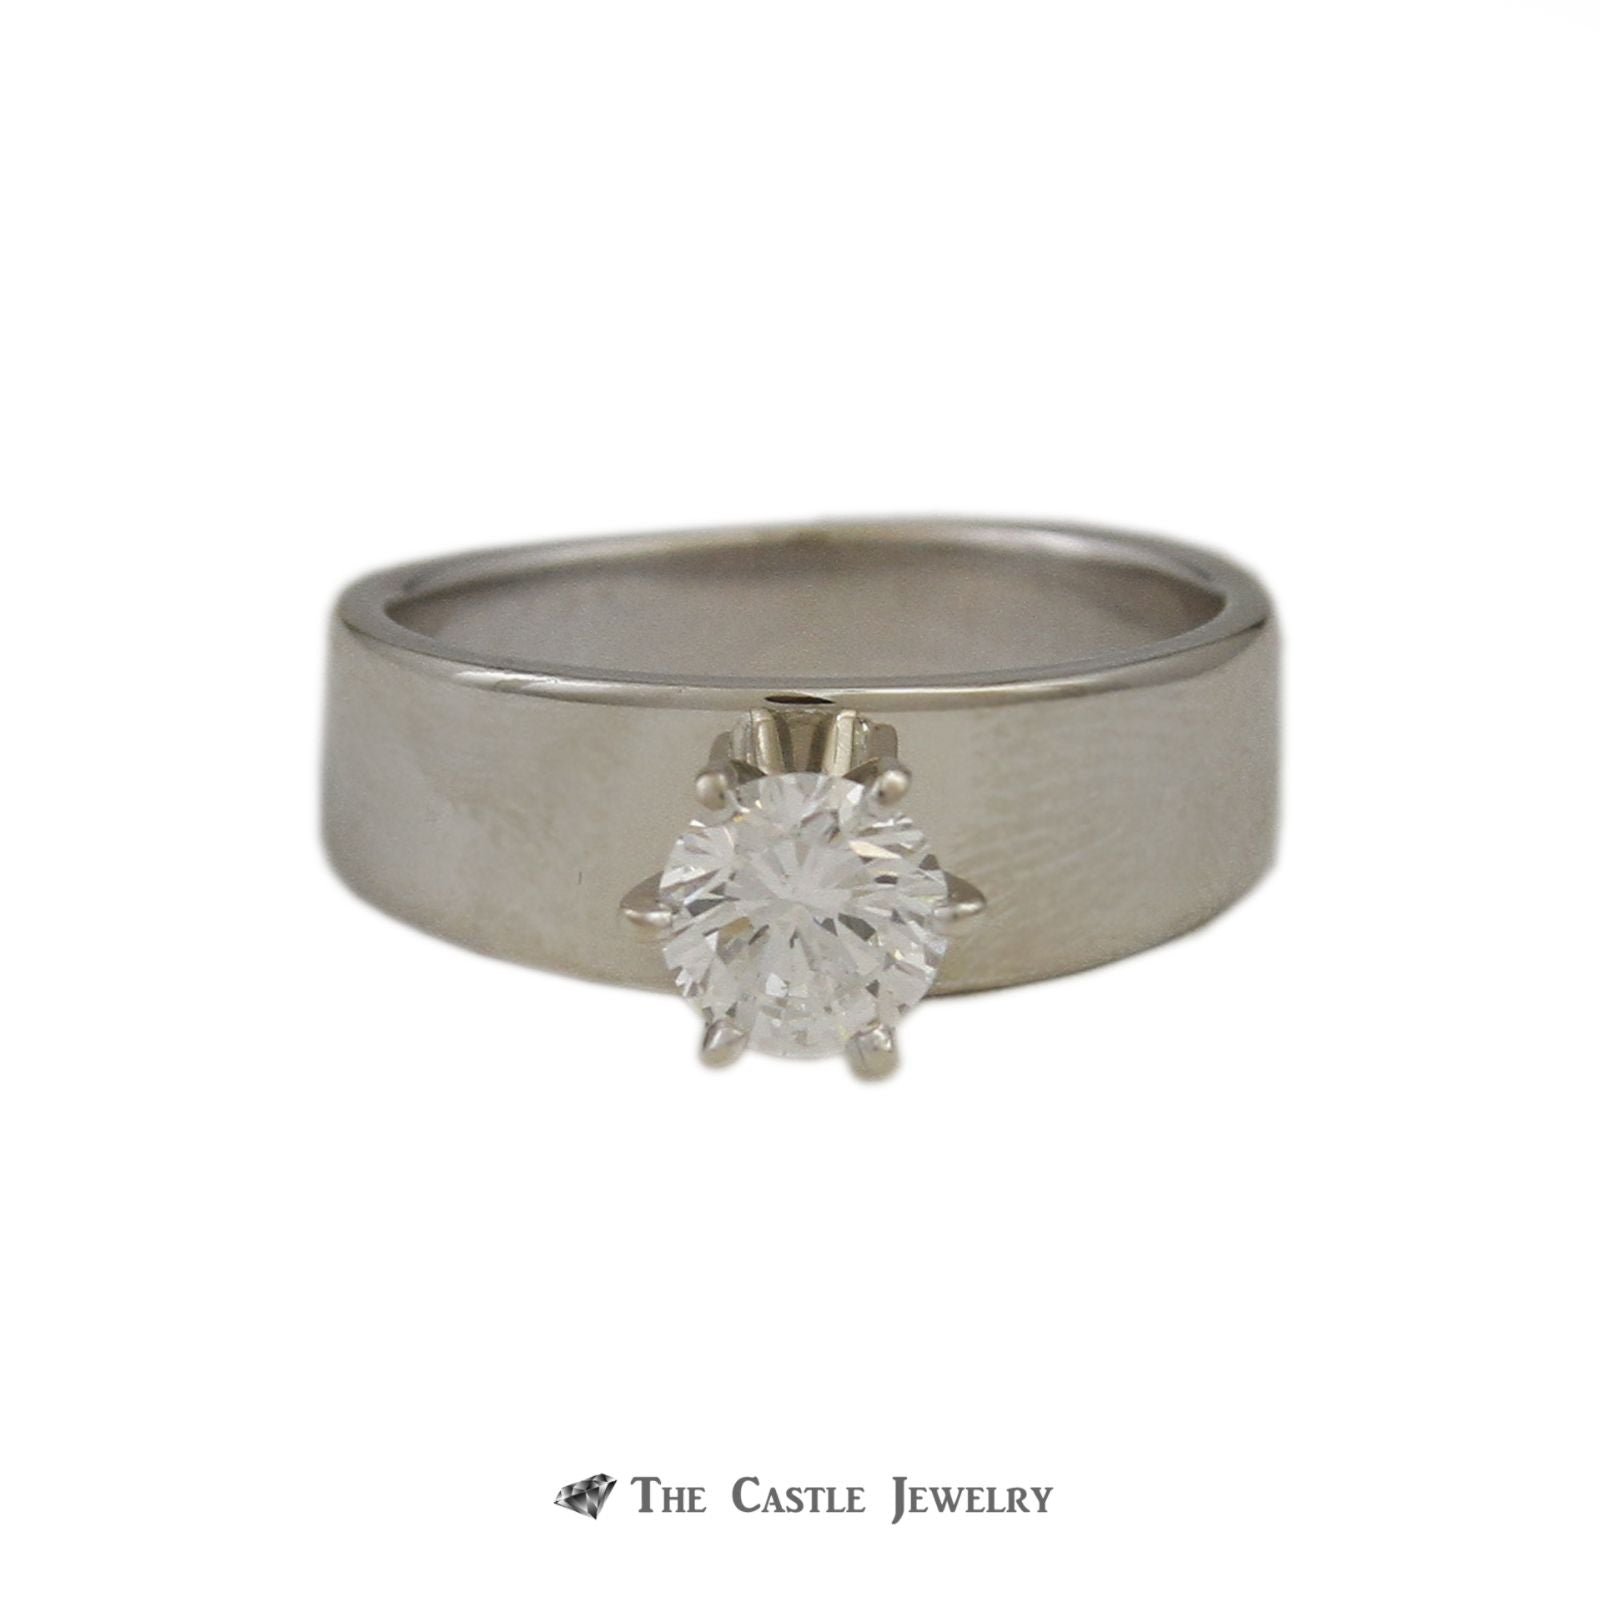 .75ct Round Brilliant Cut Diamond Engagement Ring VS2-H in Wide Tapered Mounting